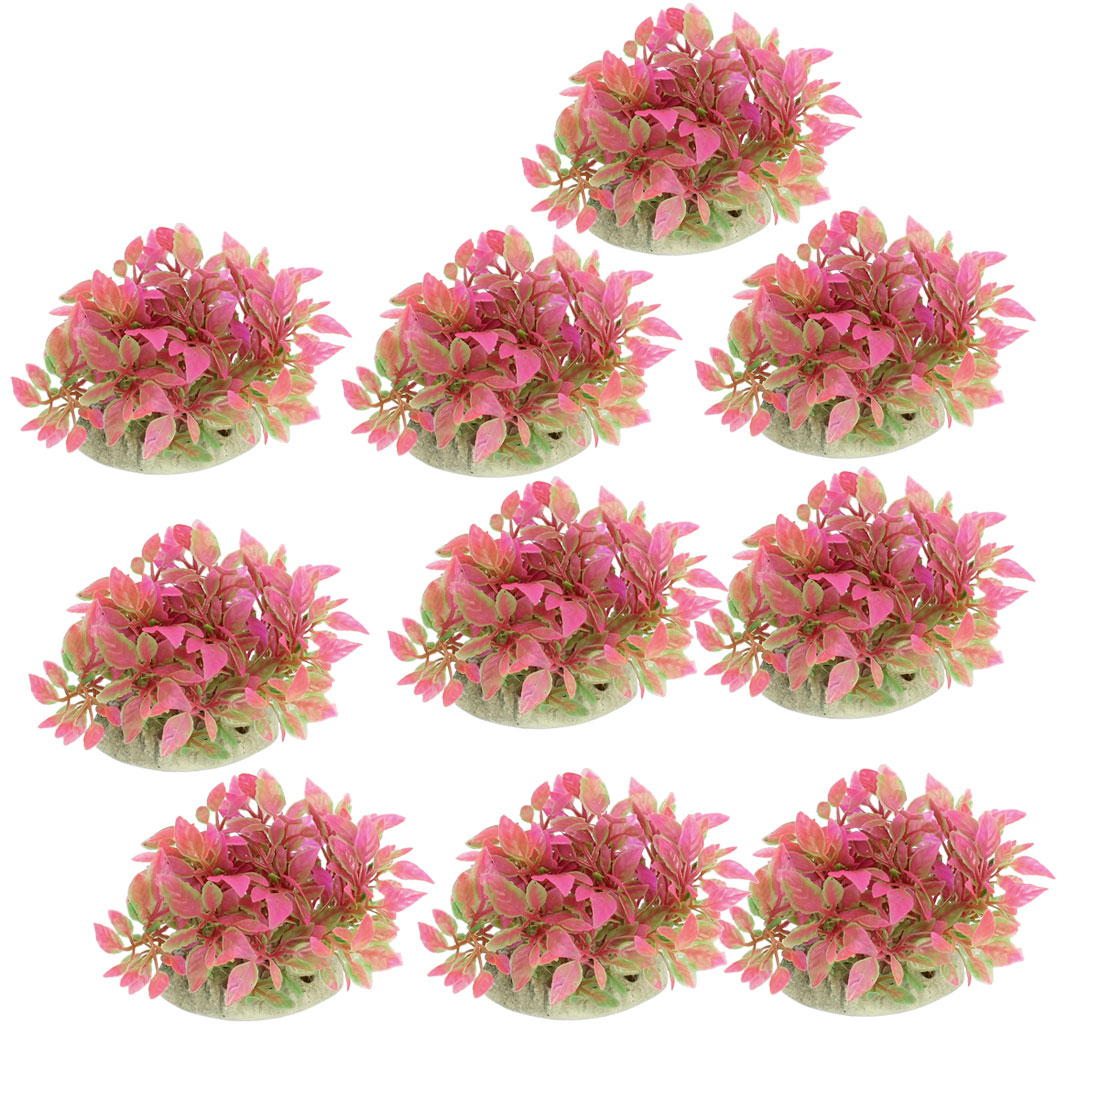 "10 Pcs Aquarium Tank Green Hot Pink Plastic Plant Decor 3.1"" Height w Ceramic Base"